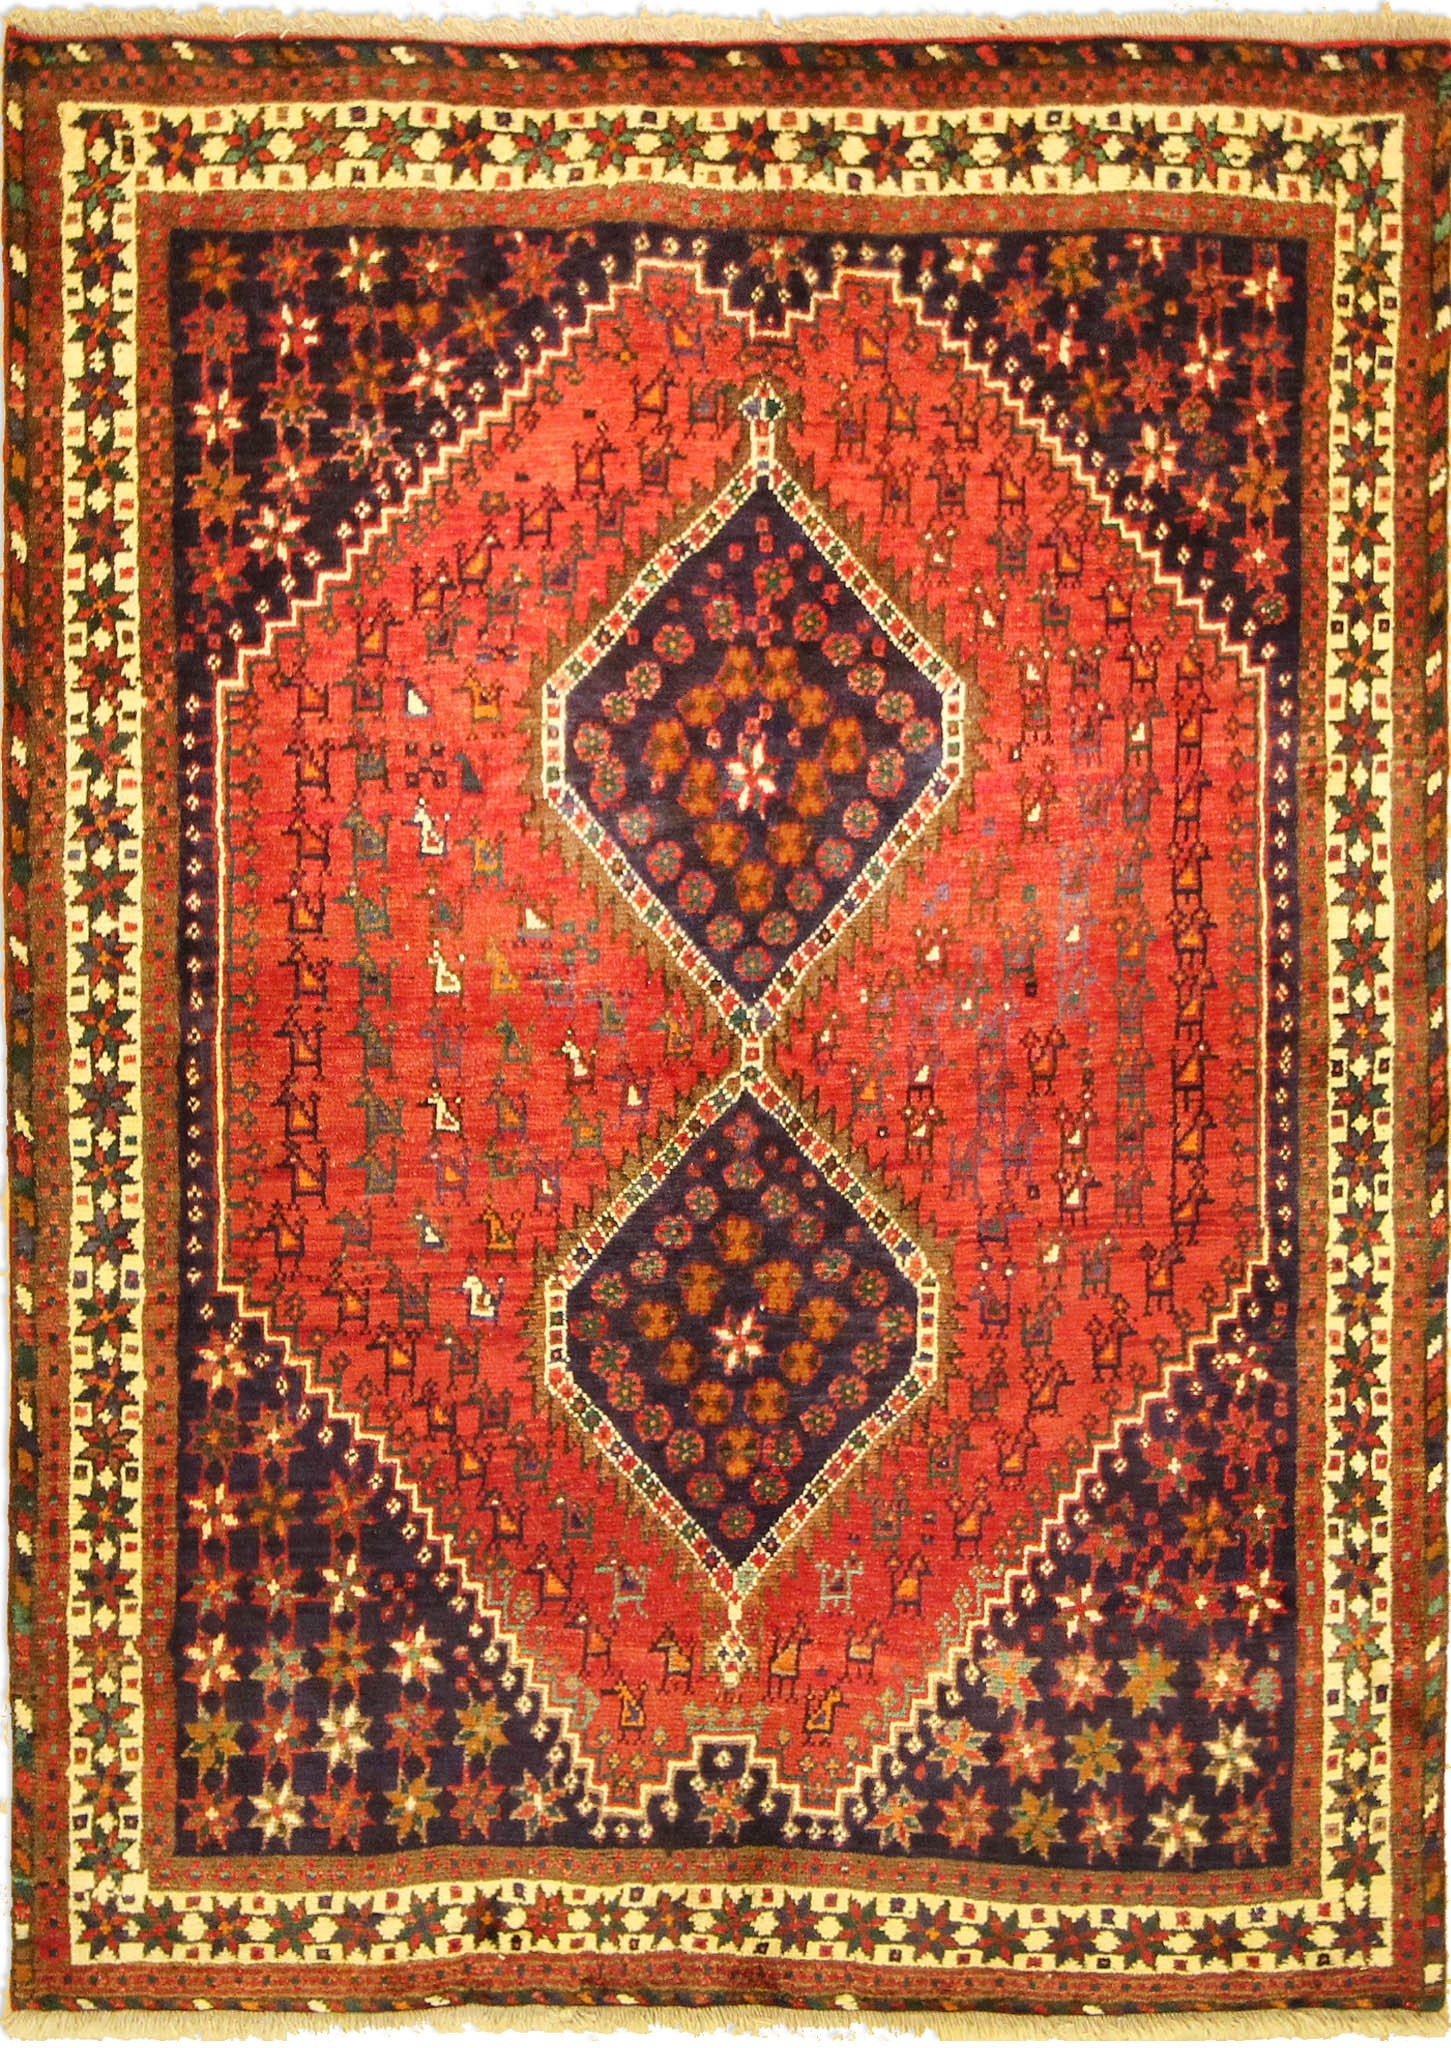 Rug Shiraz 200 X 145 Cm656 X 476 Ft Inside Traditional Carpets (Image 5 of 15)